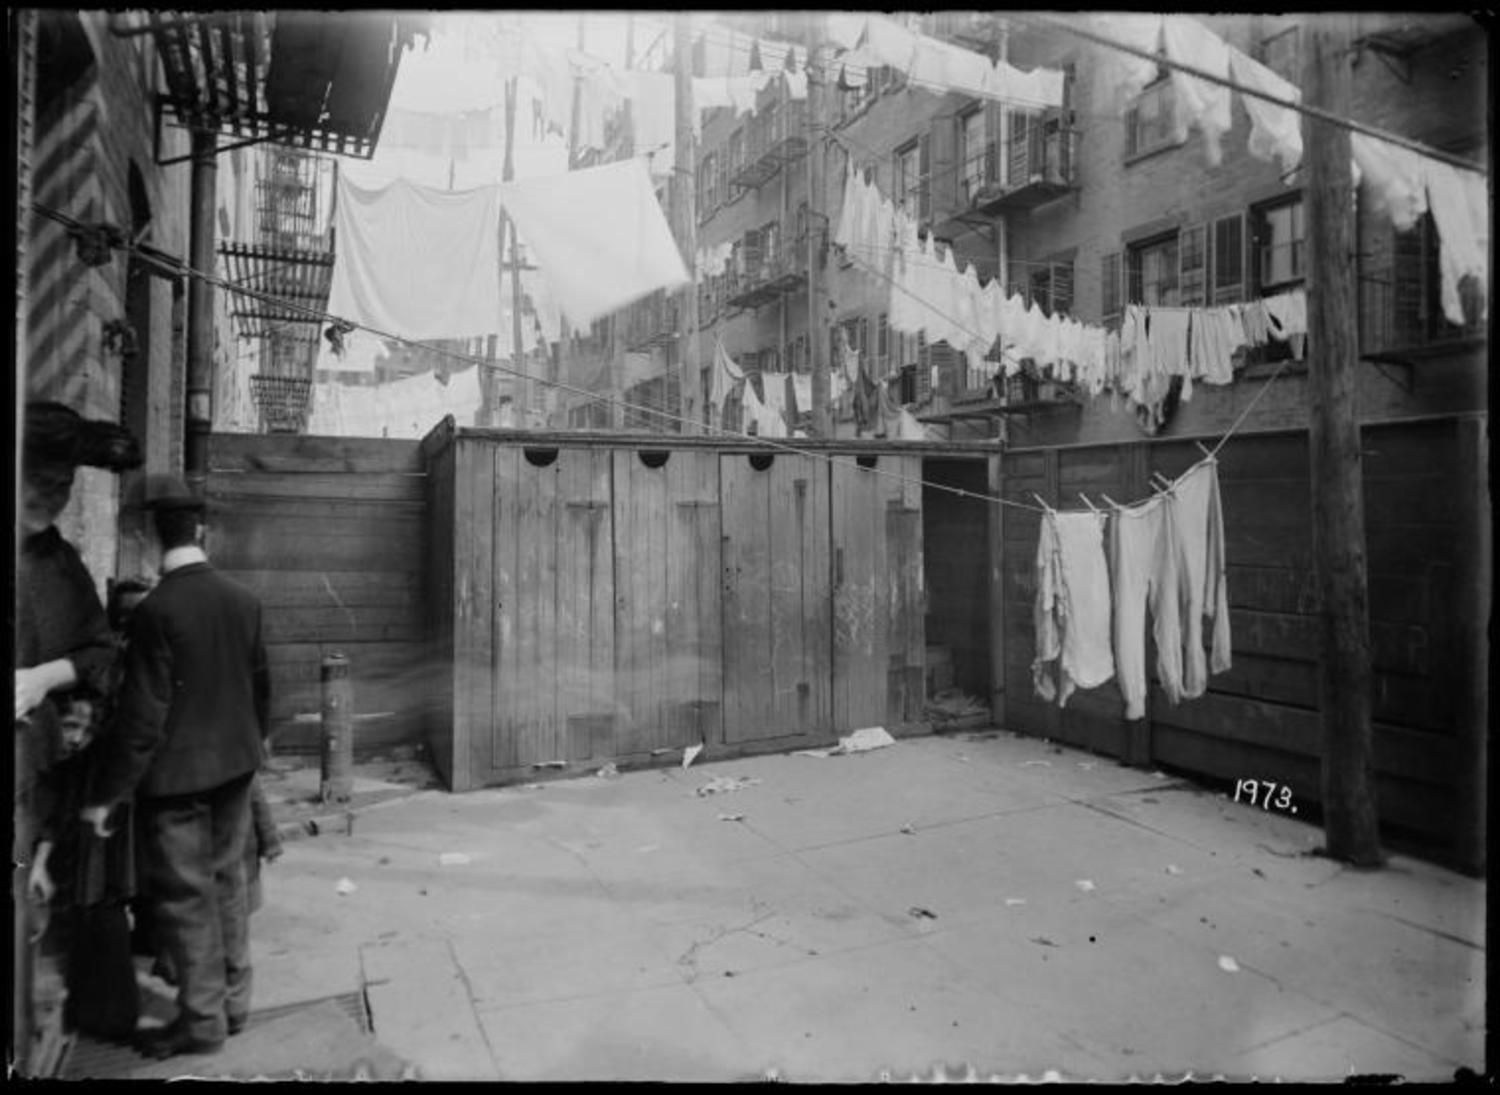 Image: The New York Public Library Digital Collections. 1902 – 1914